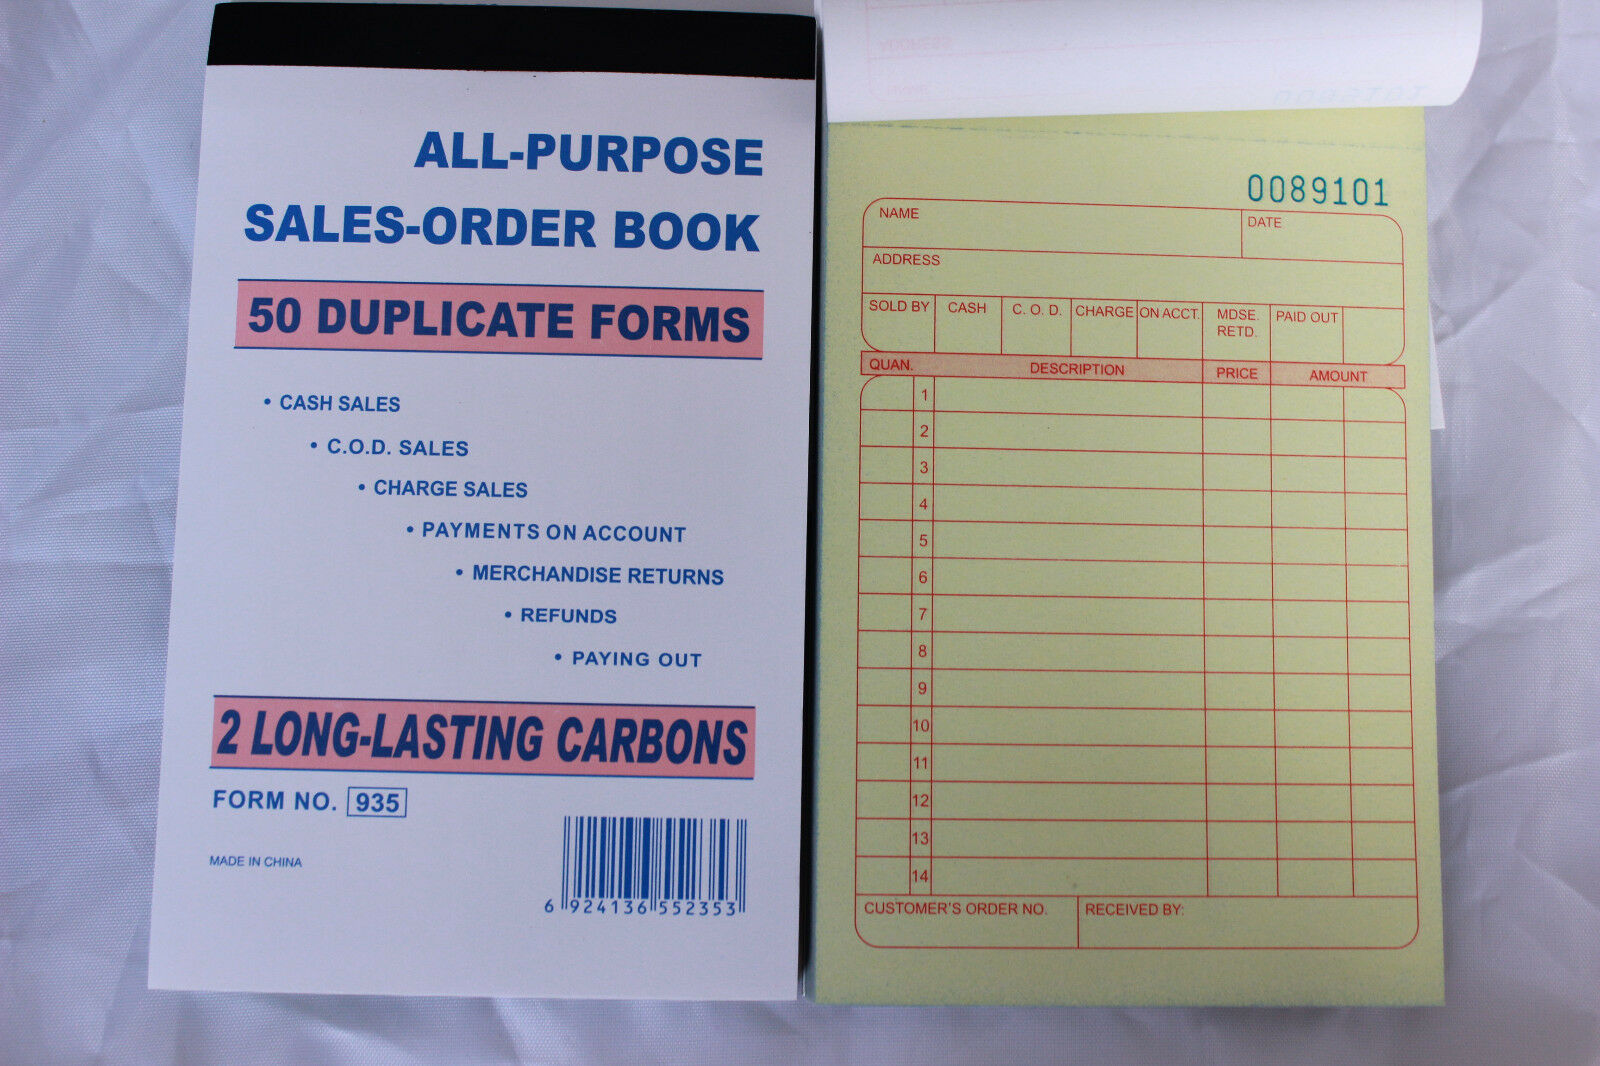 10 Pack Sales Order Books Receipt Set Wholesale 50 Duplicate Carbonless  Forms